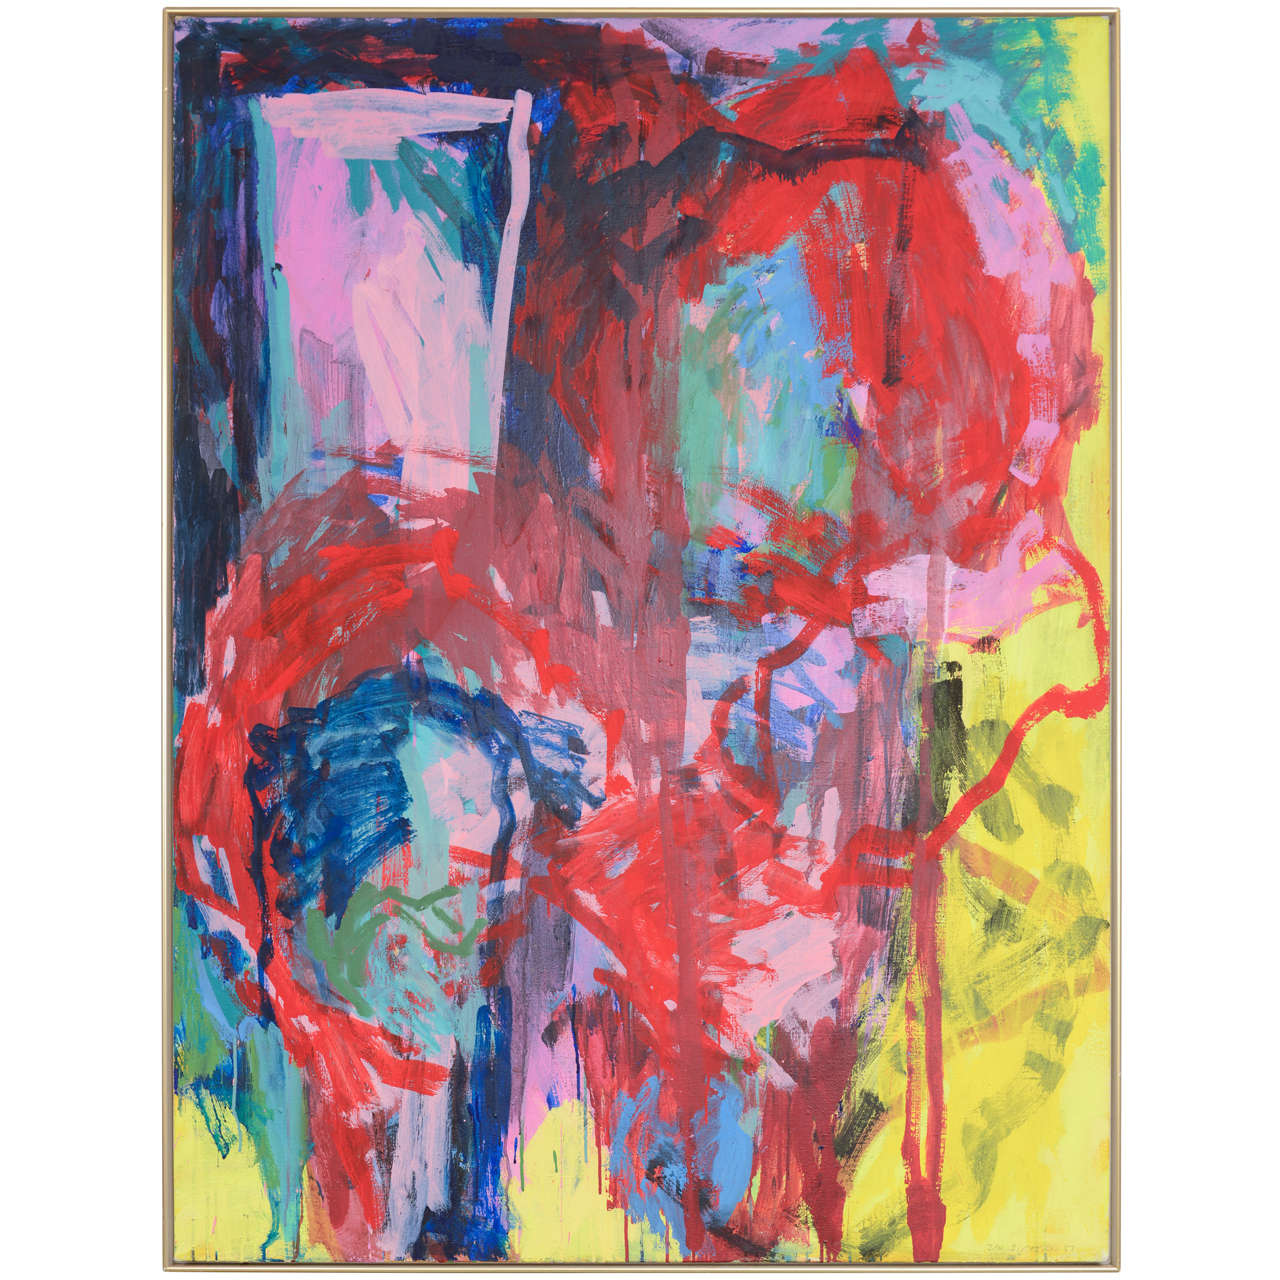 20th Century Danish Abstract Composition by Jan Sivertsen